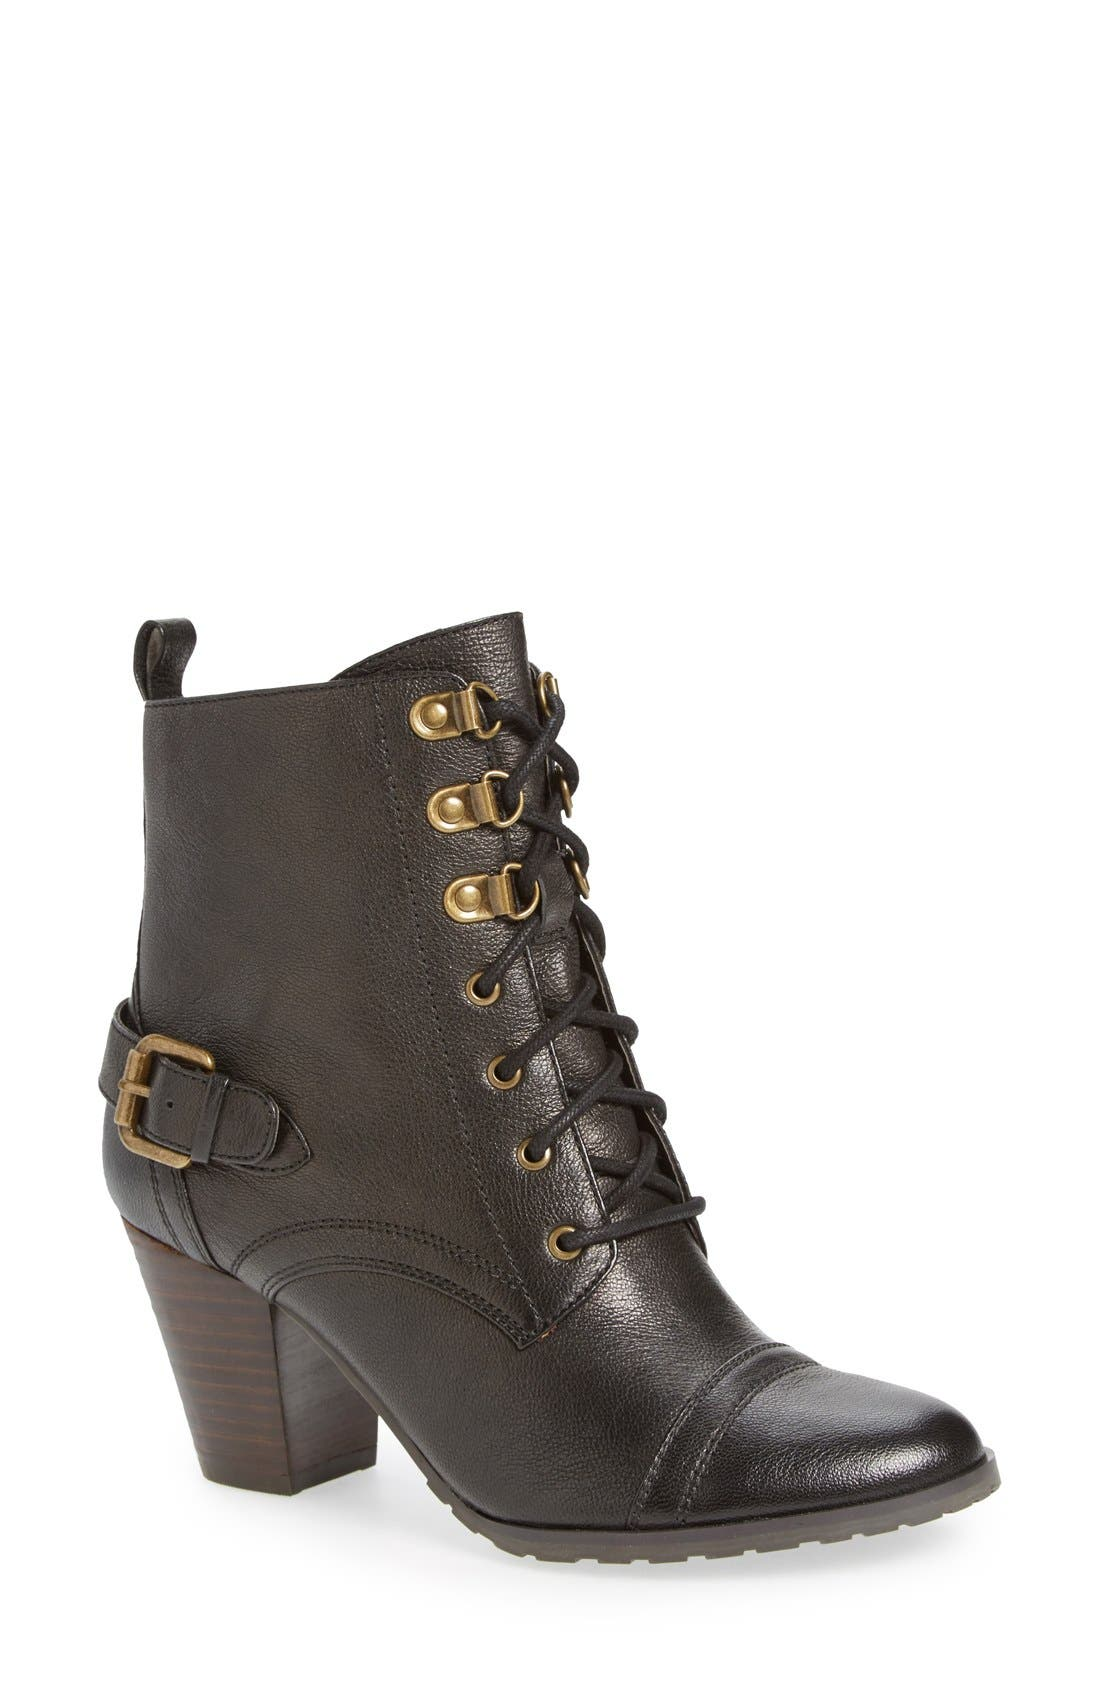 Alternate Image 1 Selected - Bella Vita 'Kennedy' Lace-Up Bootie (Women)